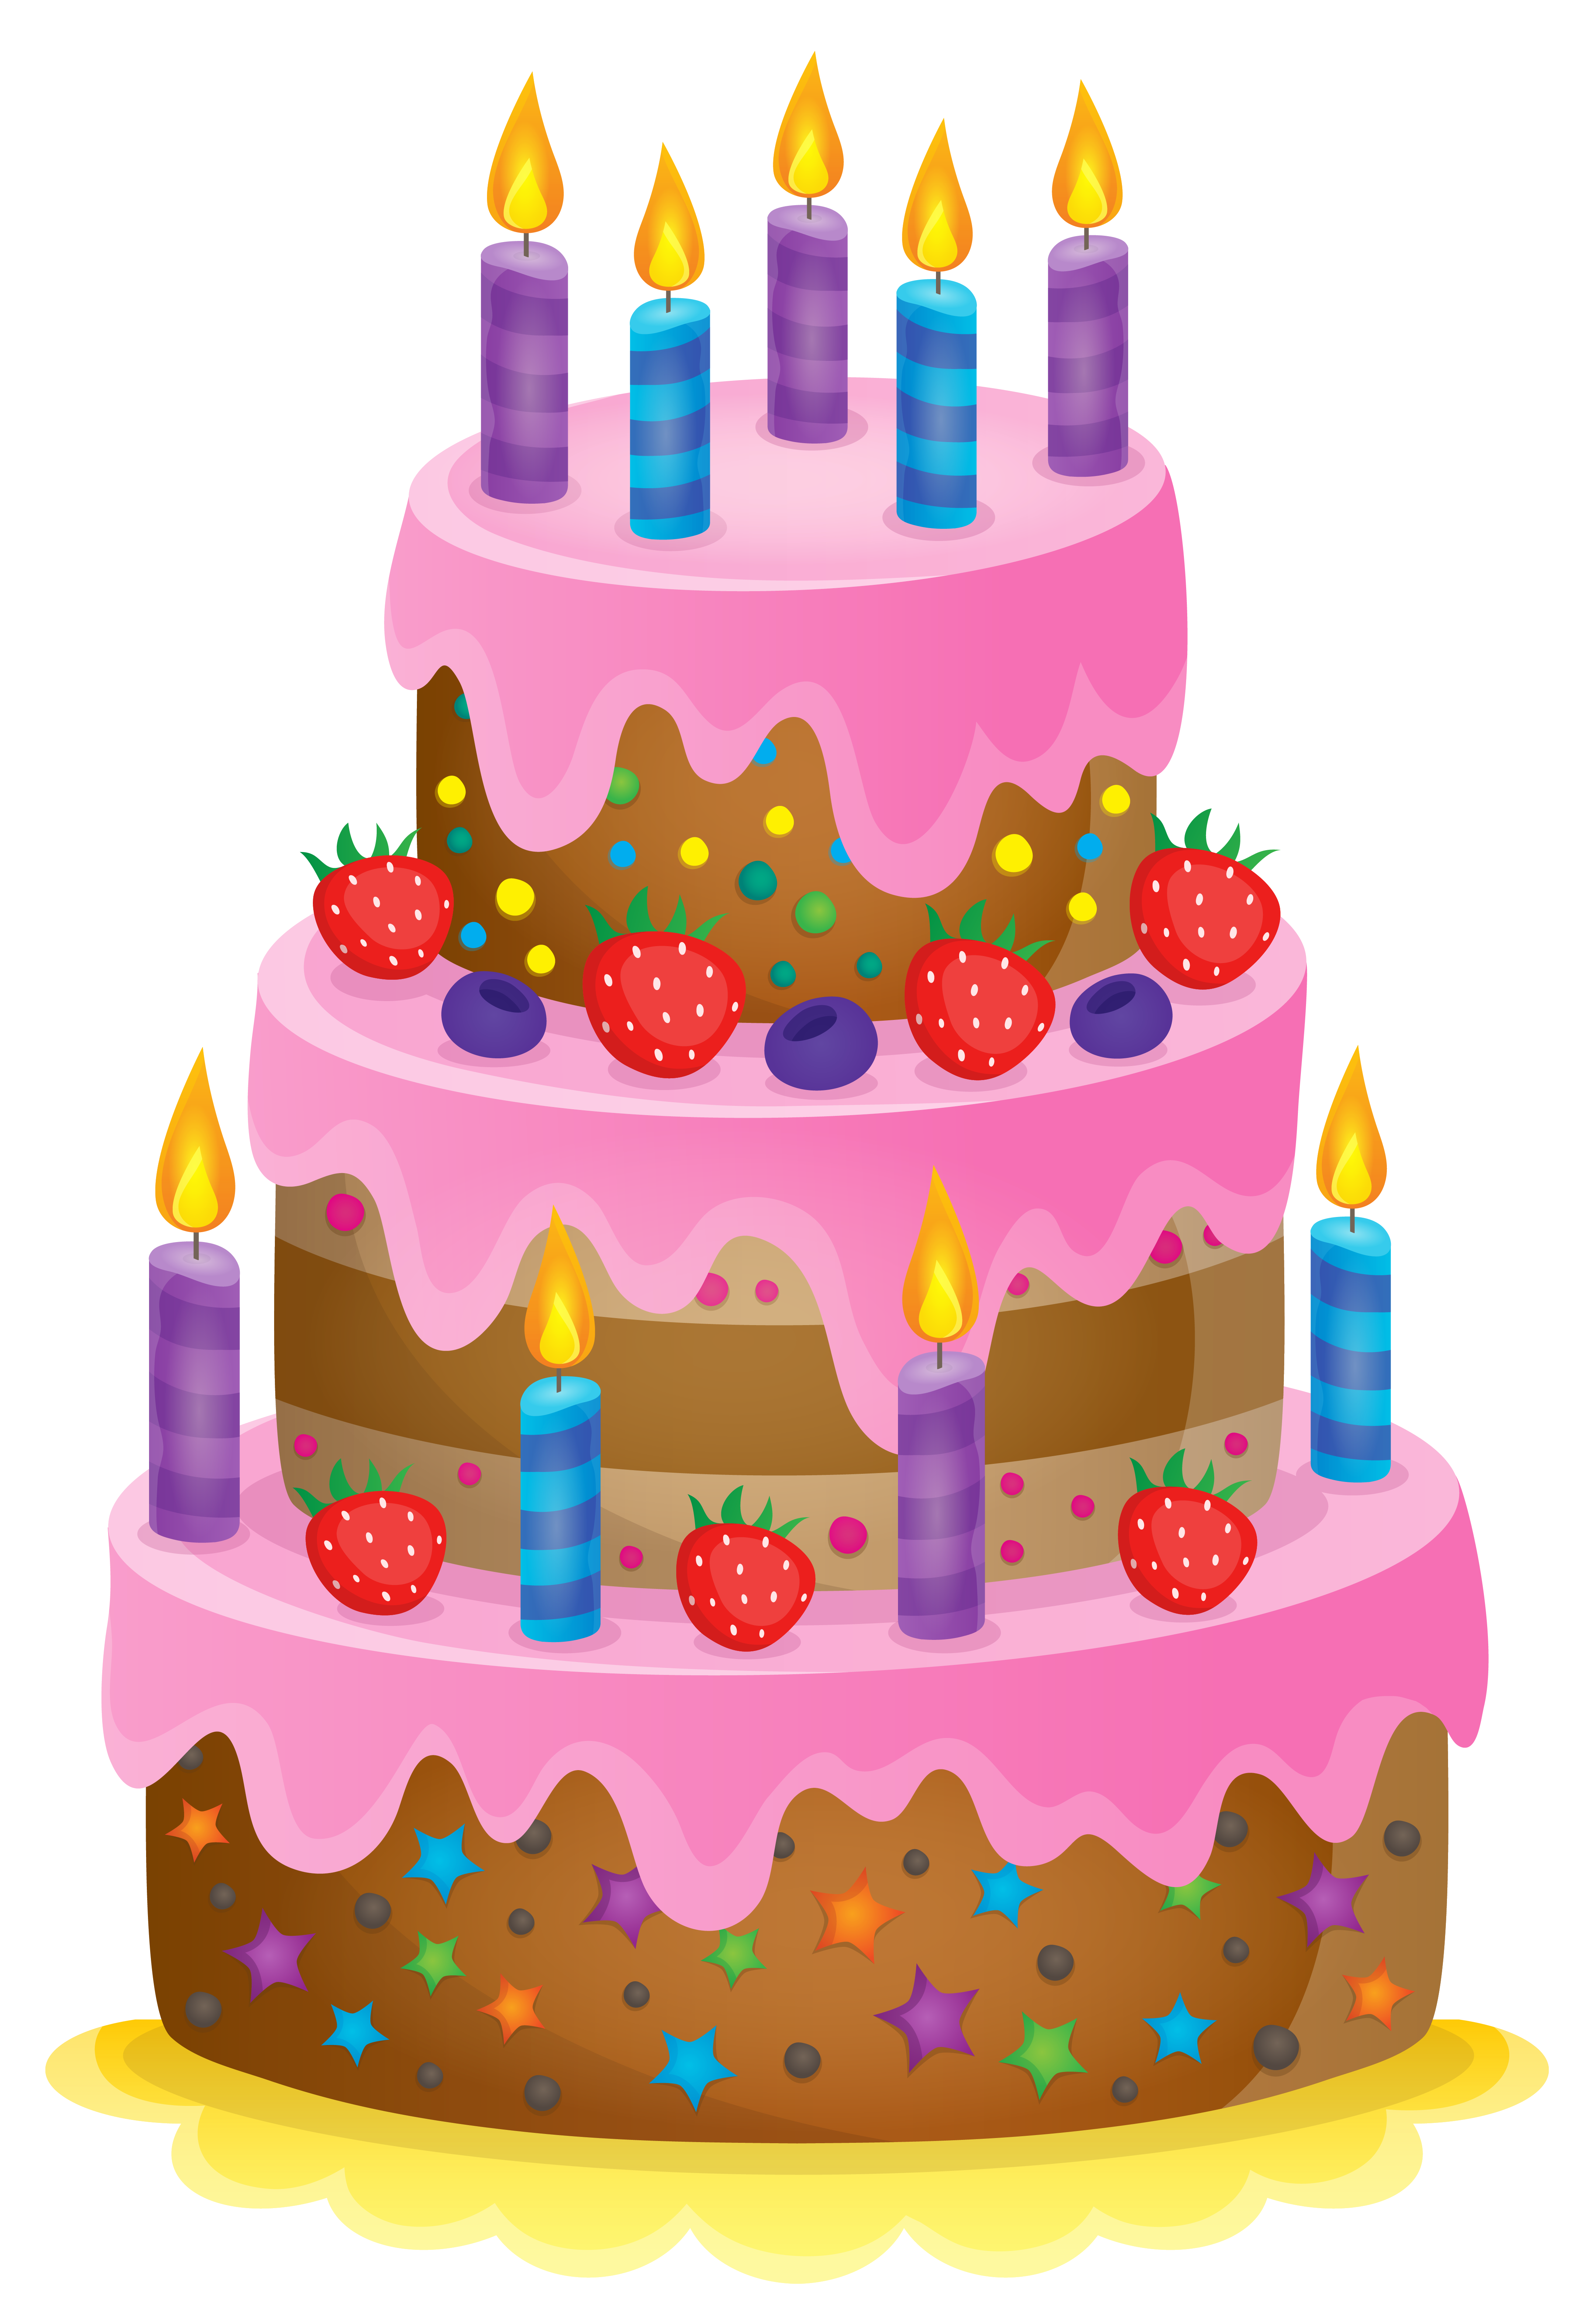 Cake png image gallery. Cute clipart dessert